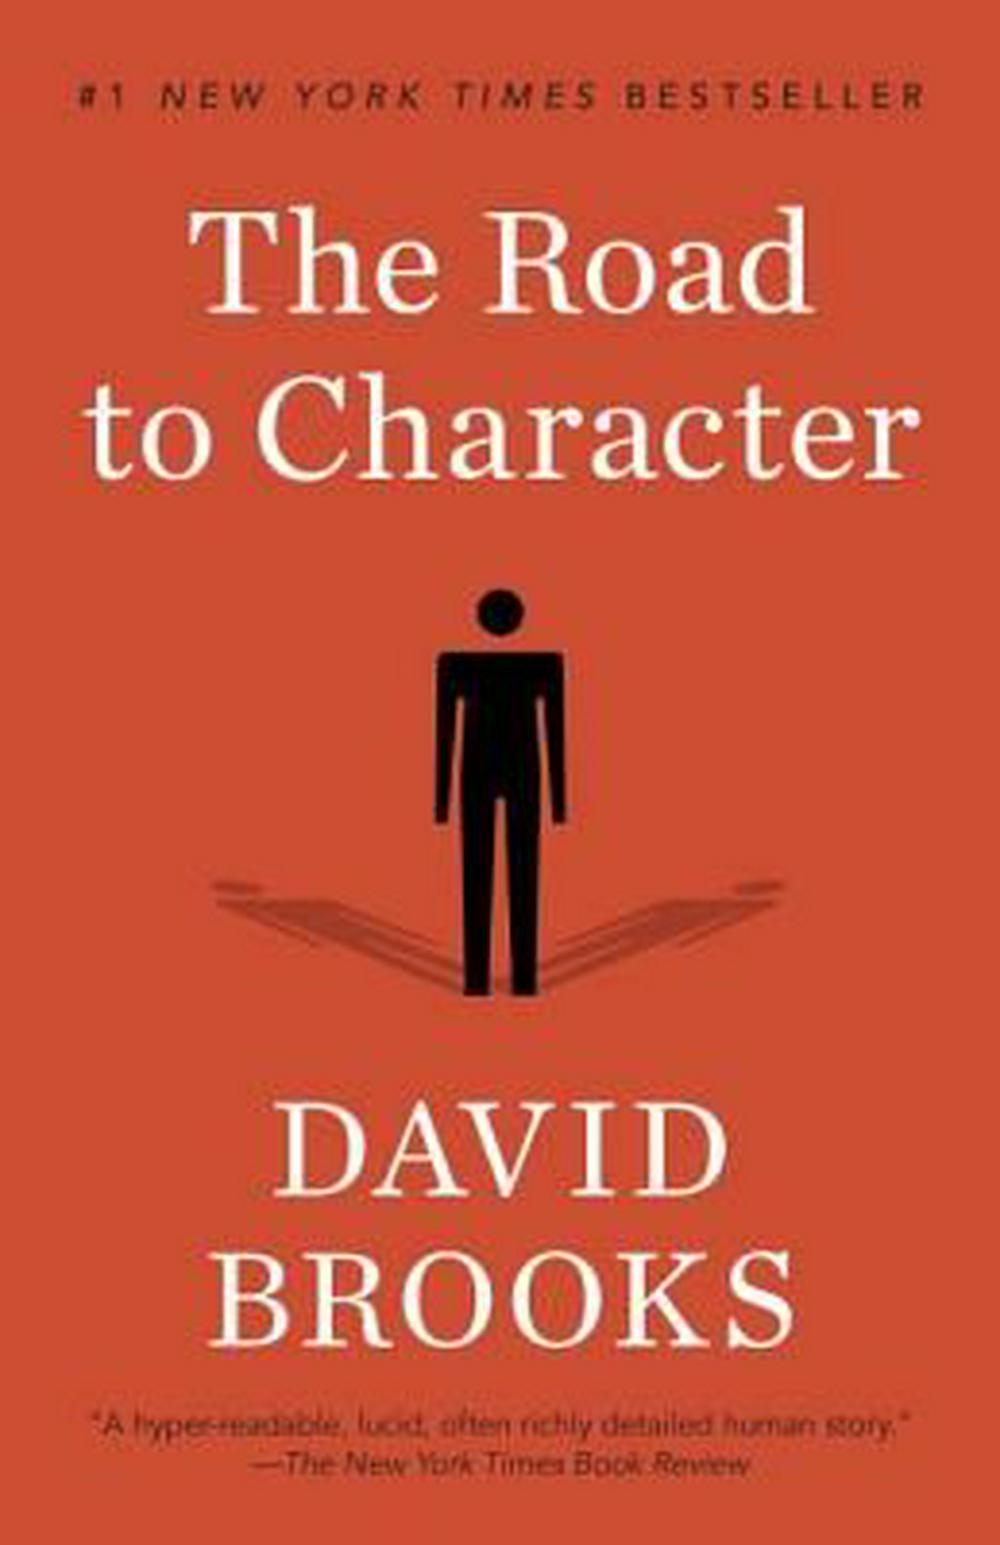 The Road to Character by David Brooks, ISBN: 9780812983418